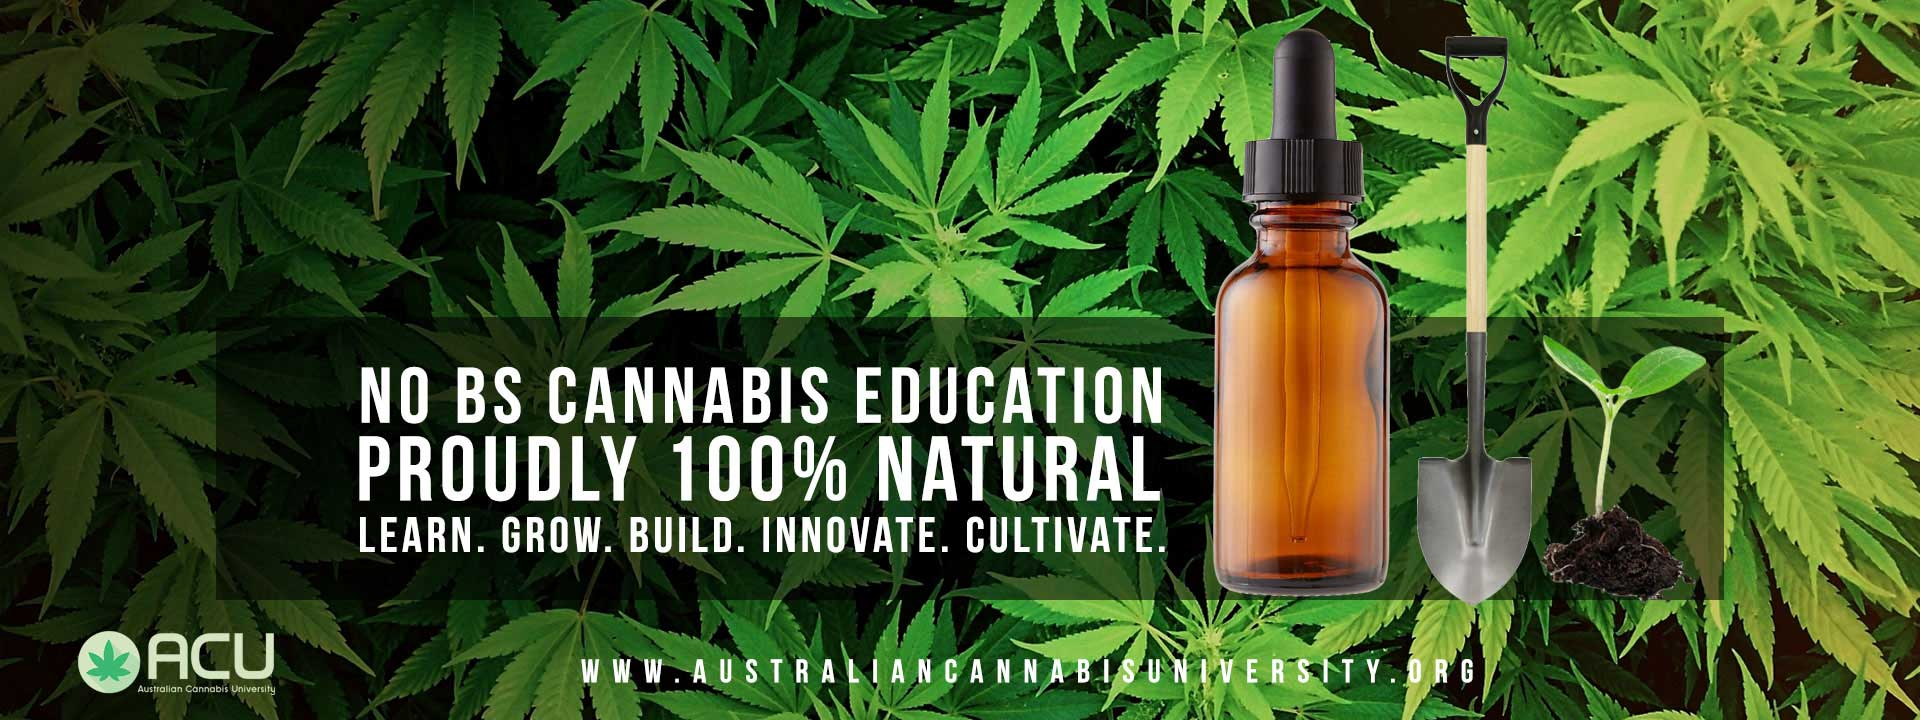 Australian Cannabis University